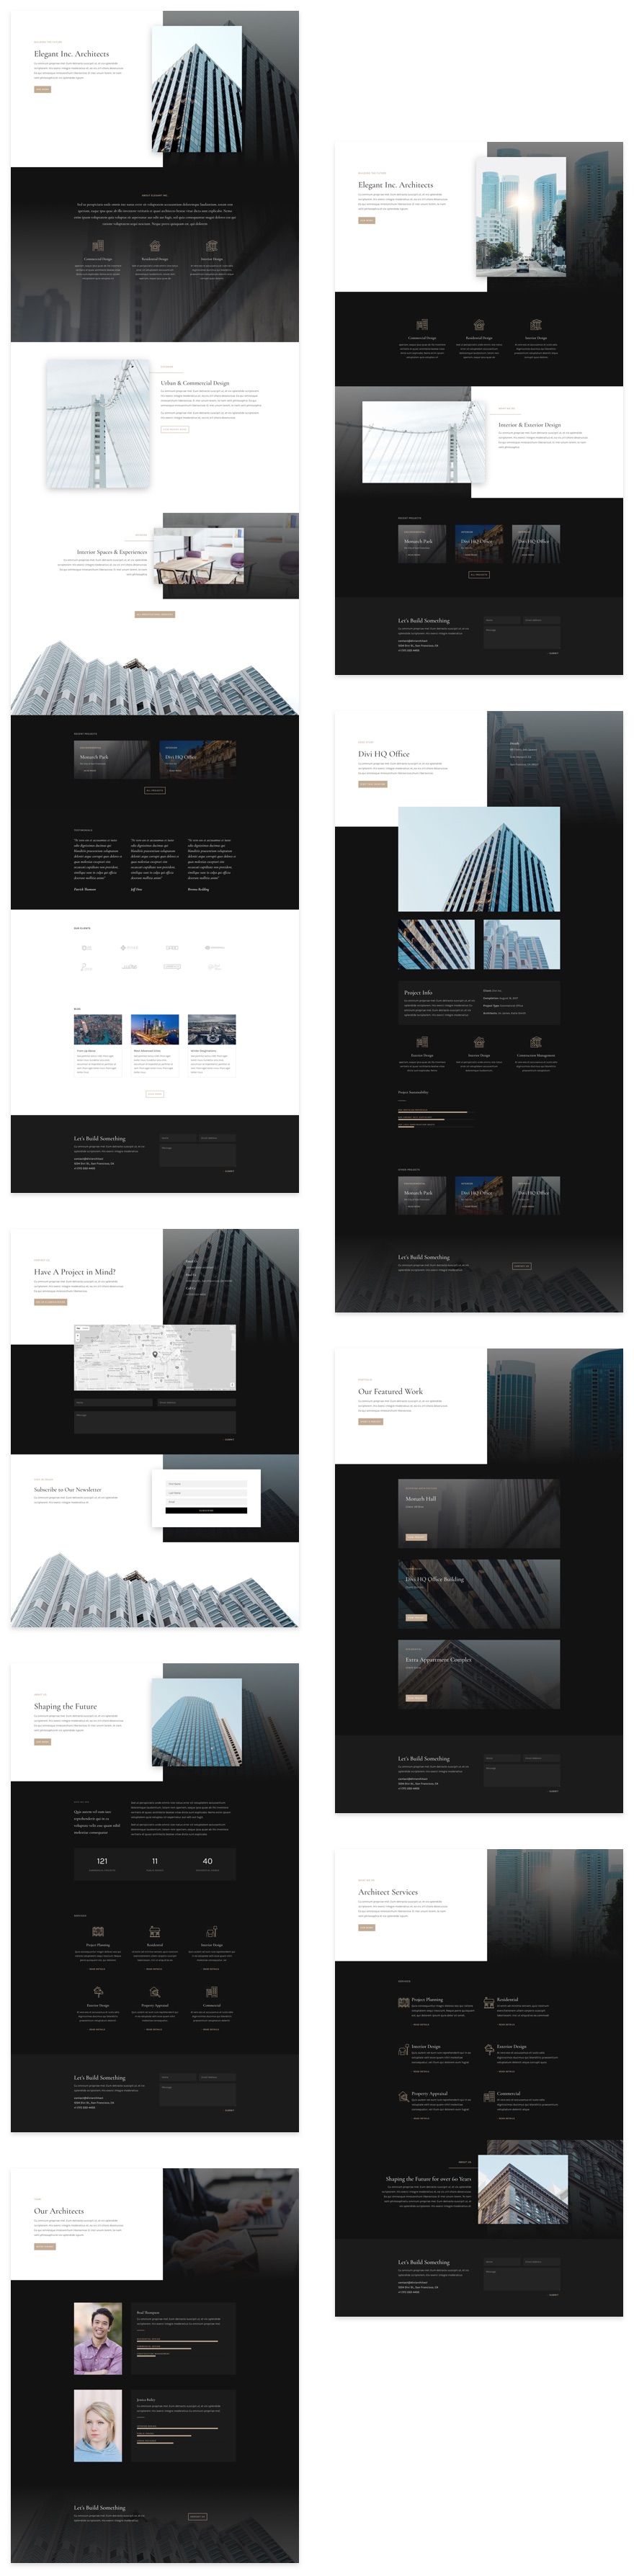 Get a FREE Architecture Firm Layout Pack for Divi | Elegant